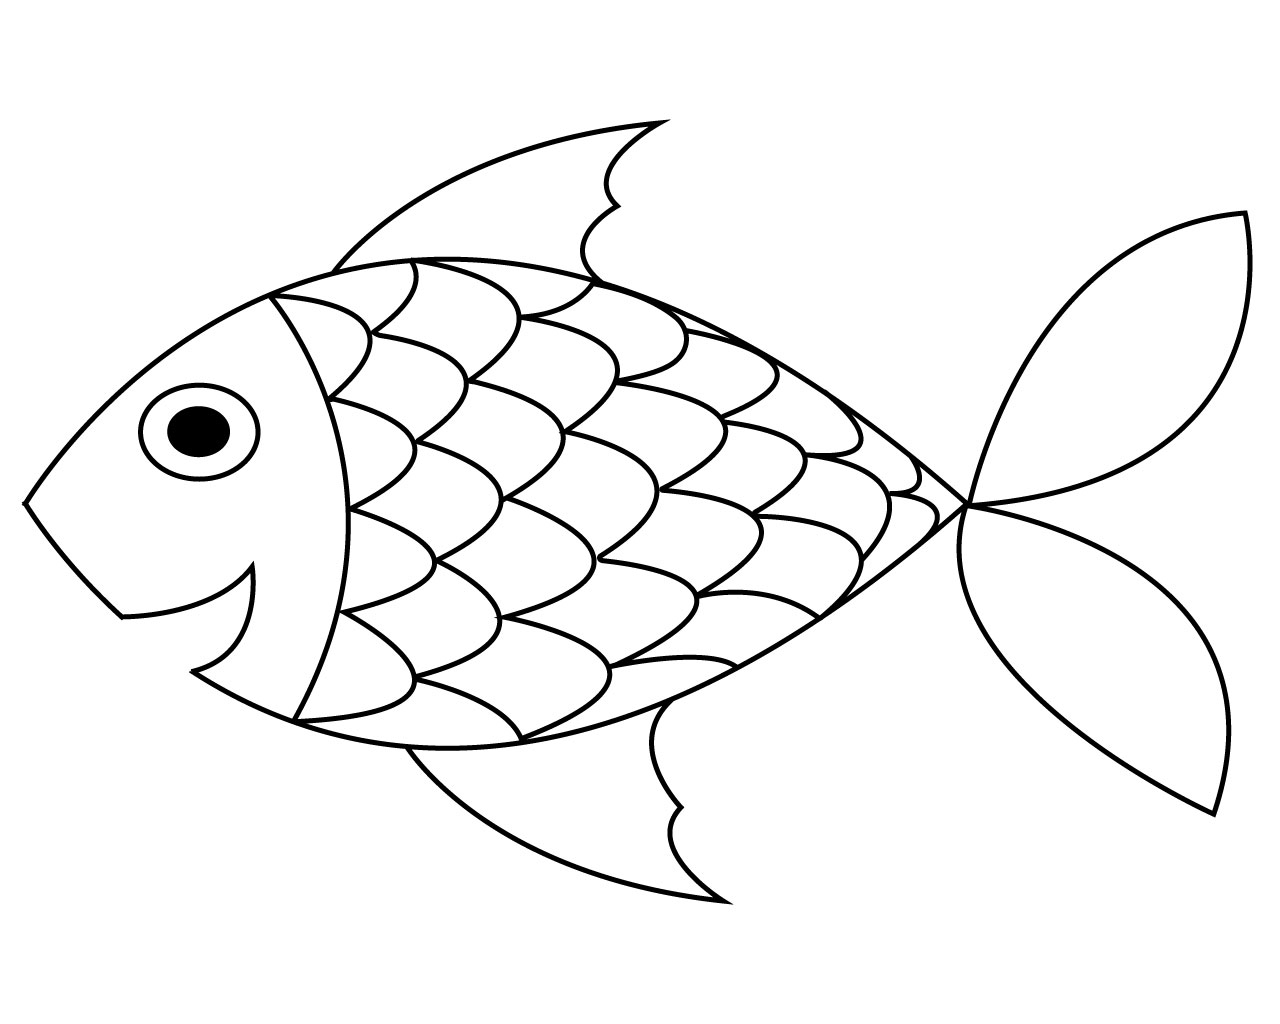 fish color cartoon fish girl coloring page sheet wecoloringpagecom fish color